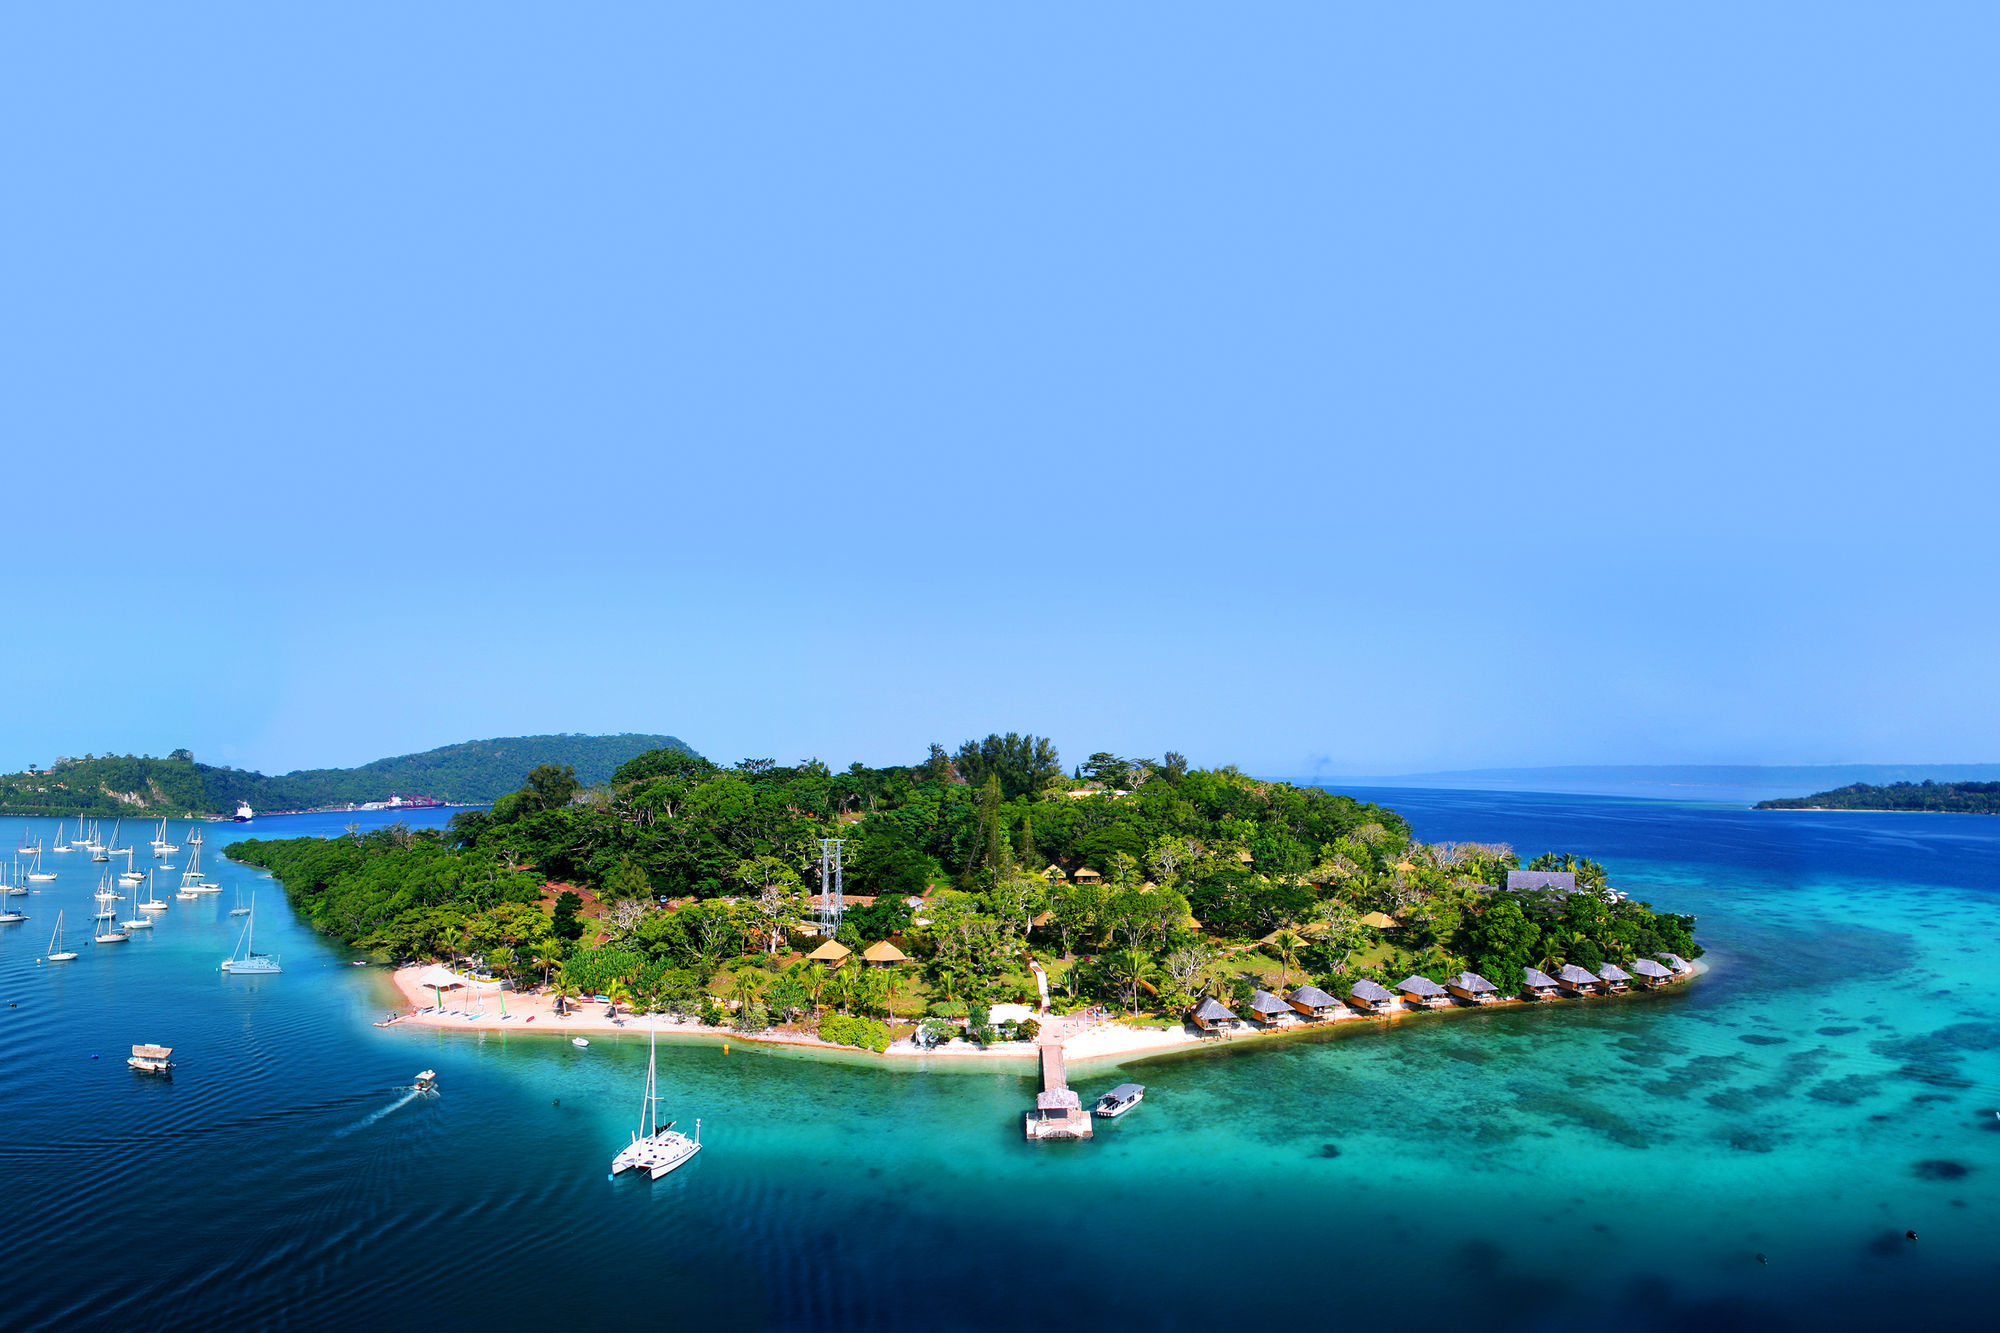 Iririki Island Resort and Spa